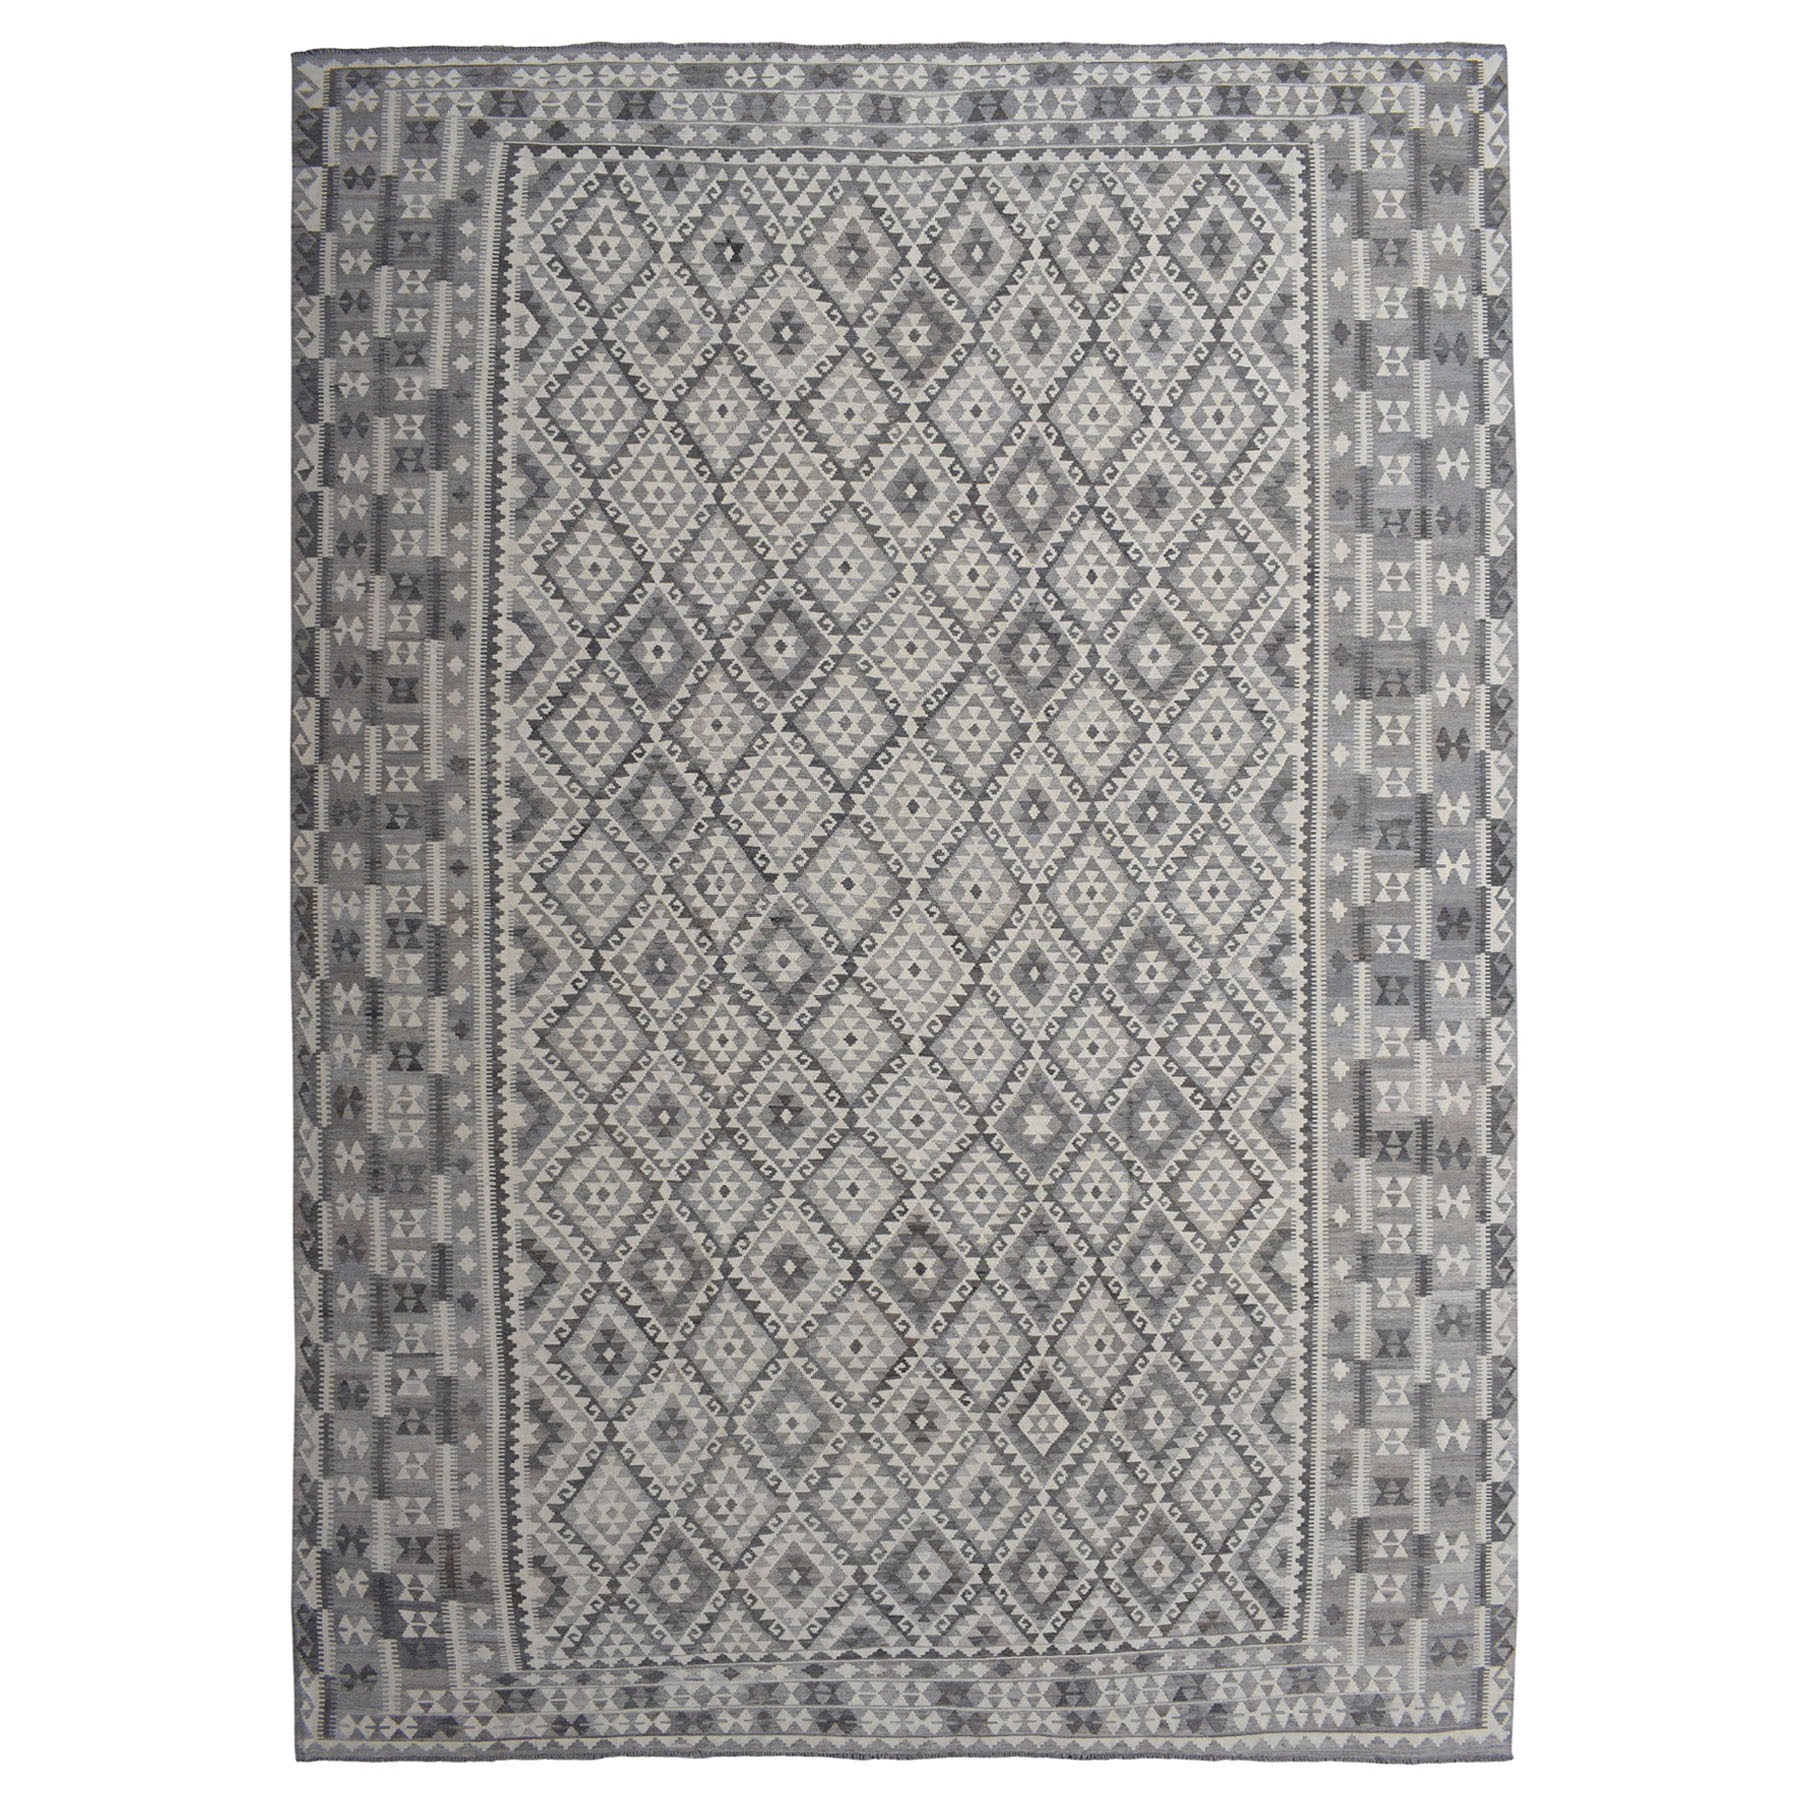 "11'7""x16'4"" Oversized Undyed Natural Wool Afghan Kilim Reversible Hand Woven Reversible Rug"